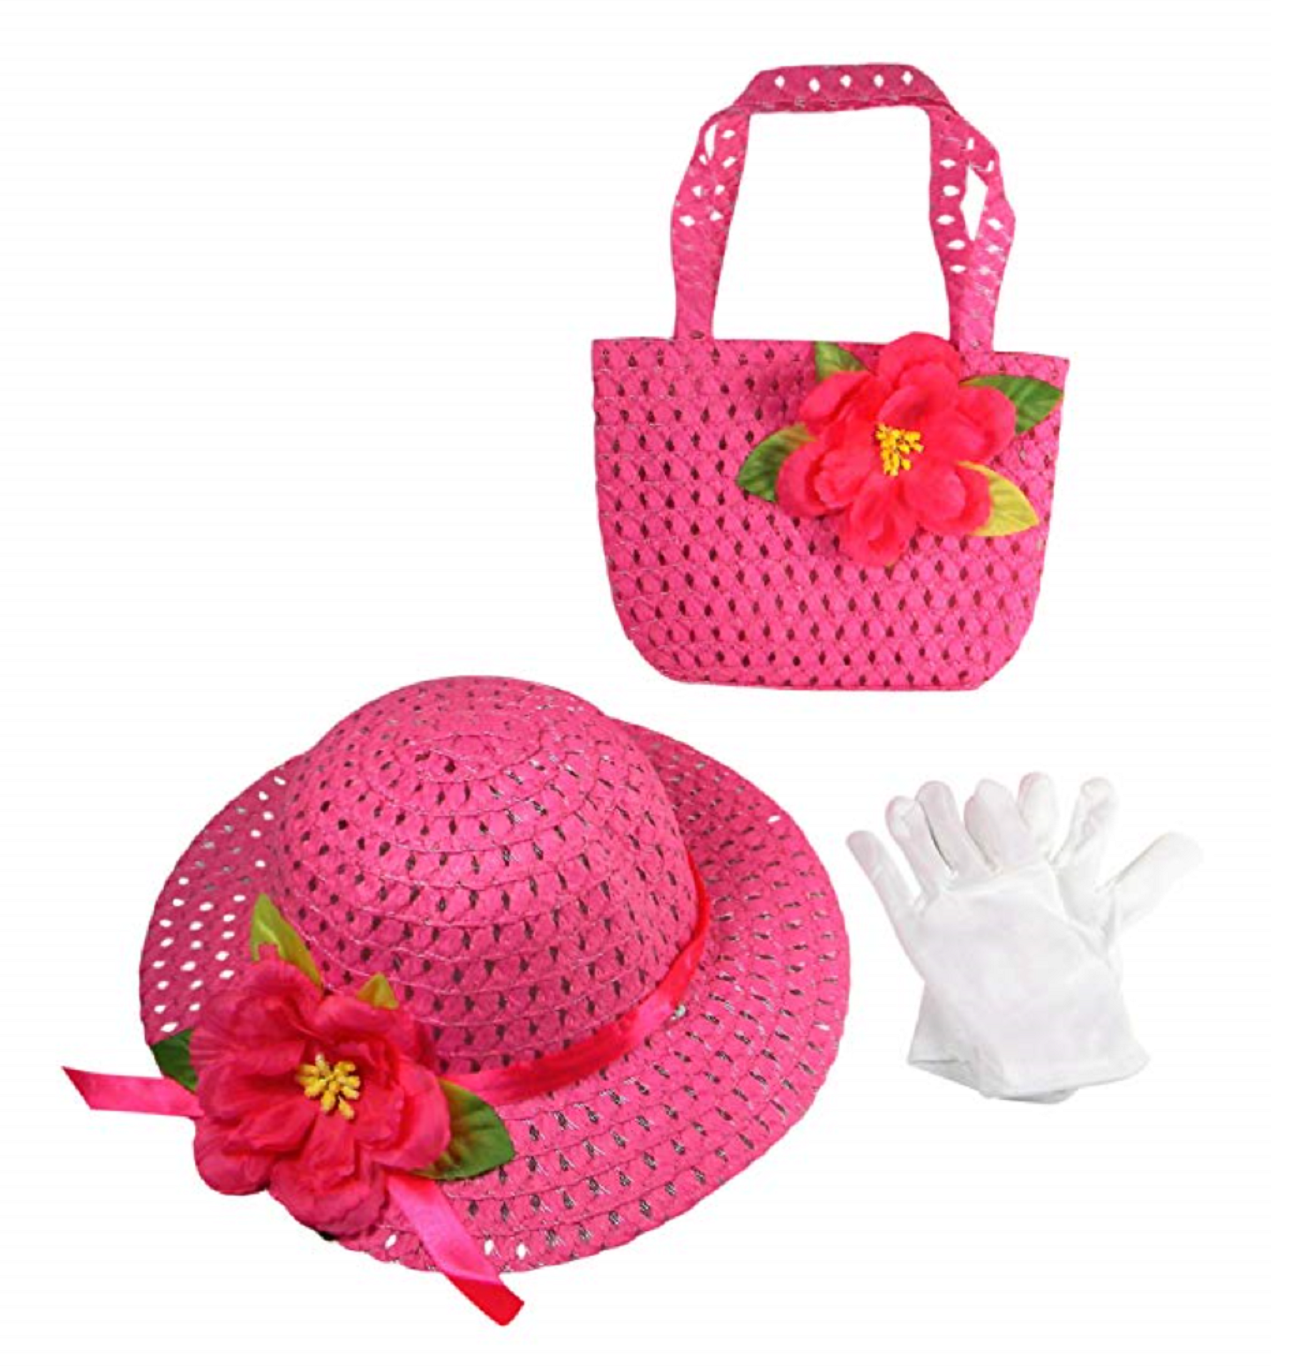 and White Gloves Purse by Butterfly Twinkles Girls Tea Party Dress Up Play Set with Sun Hat